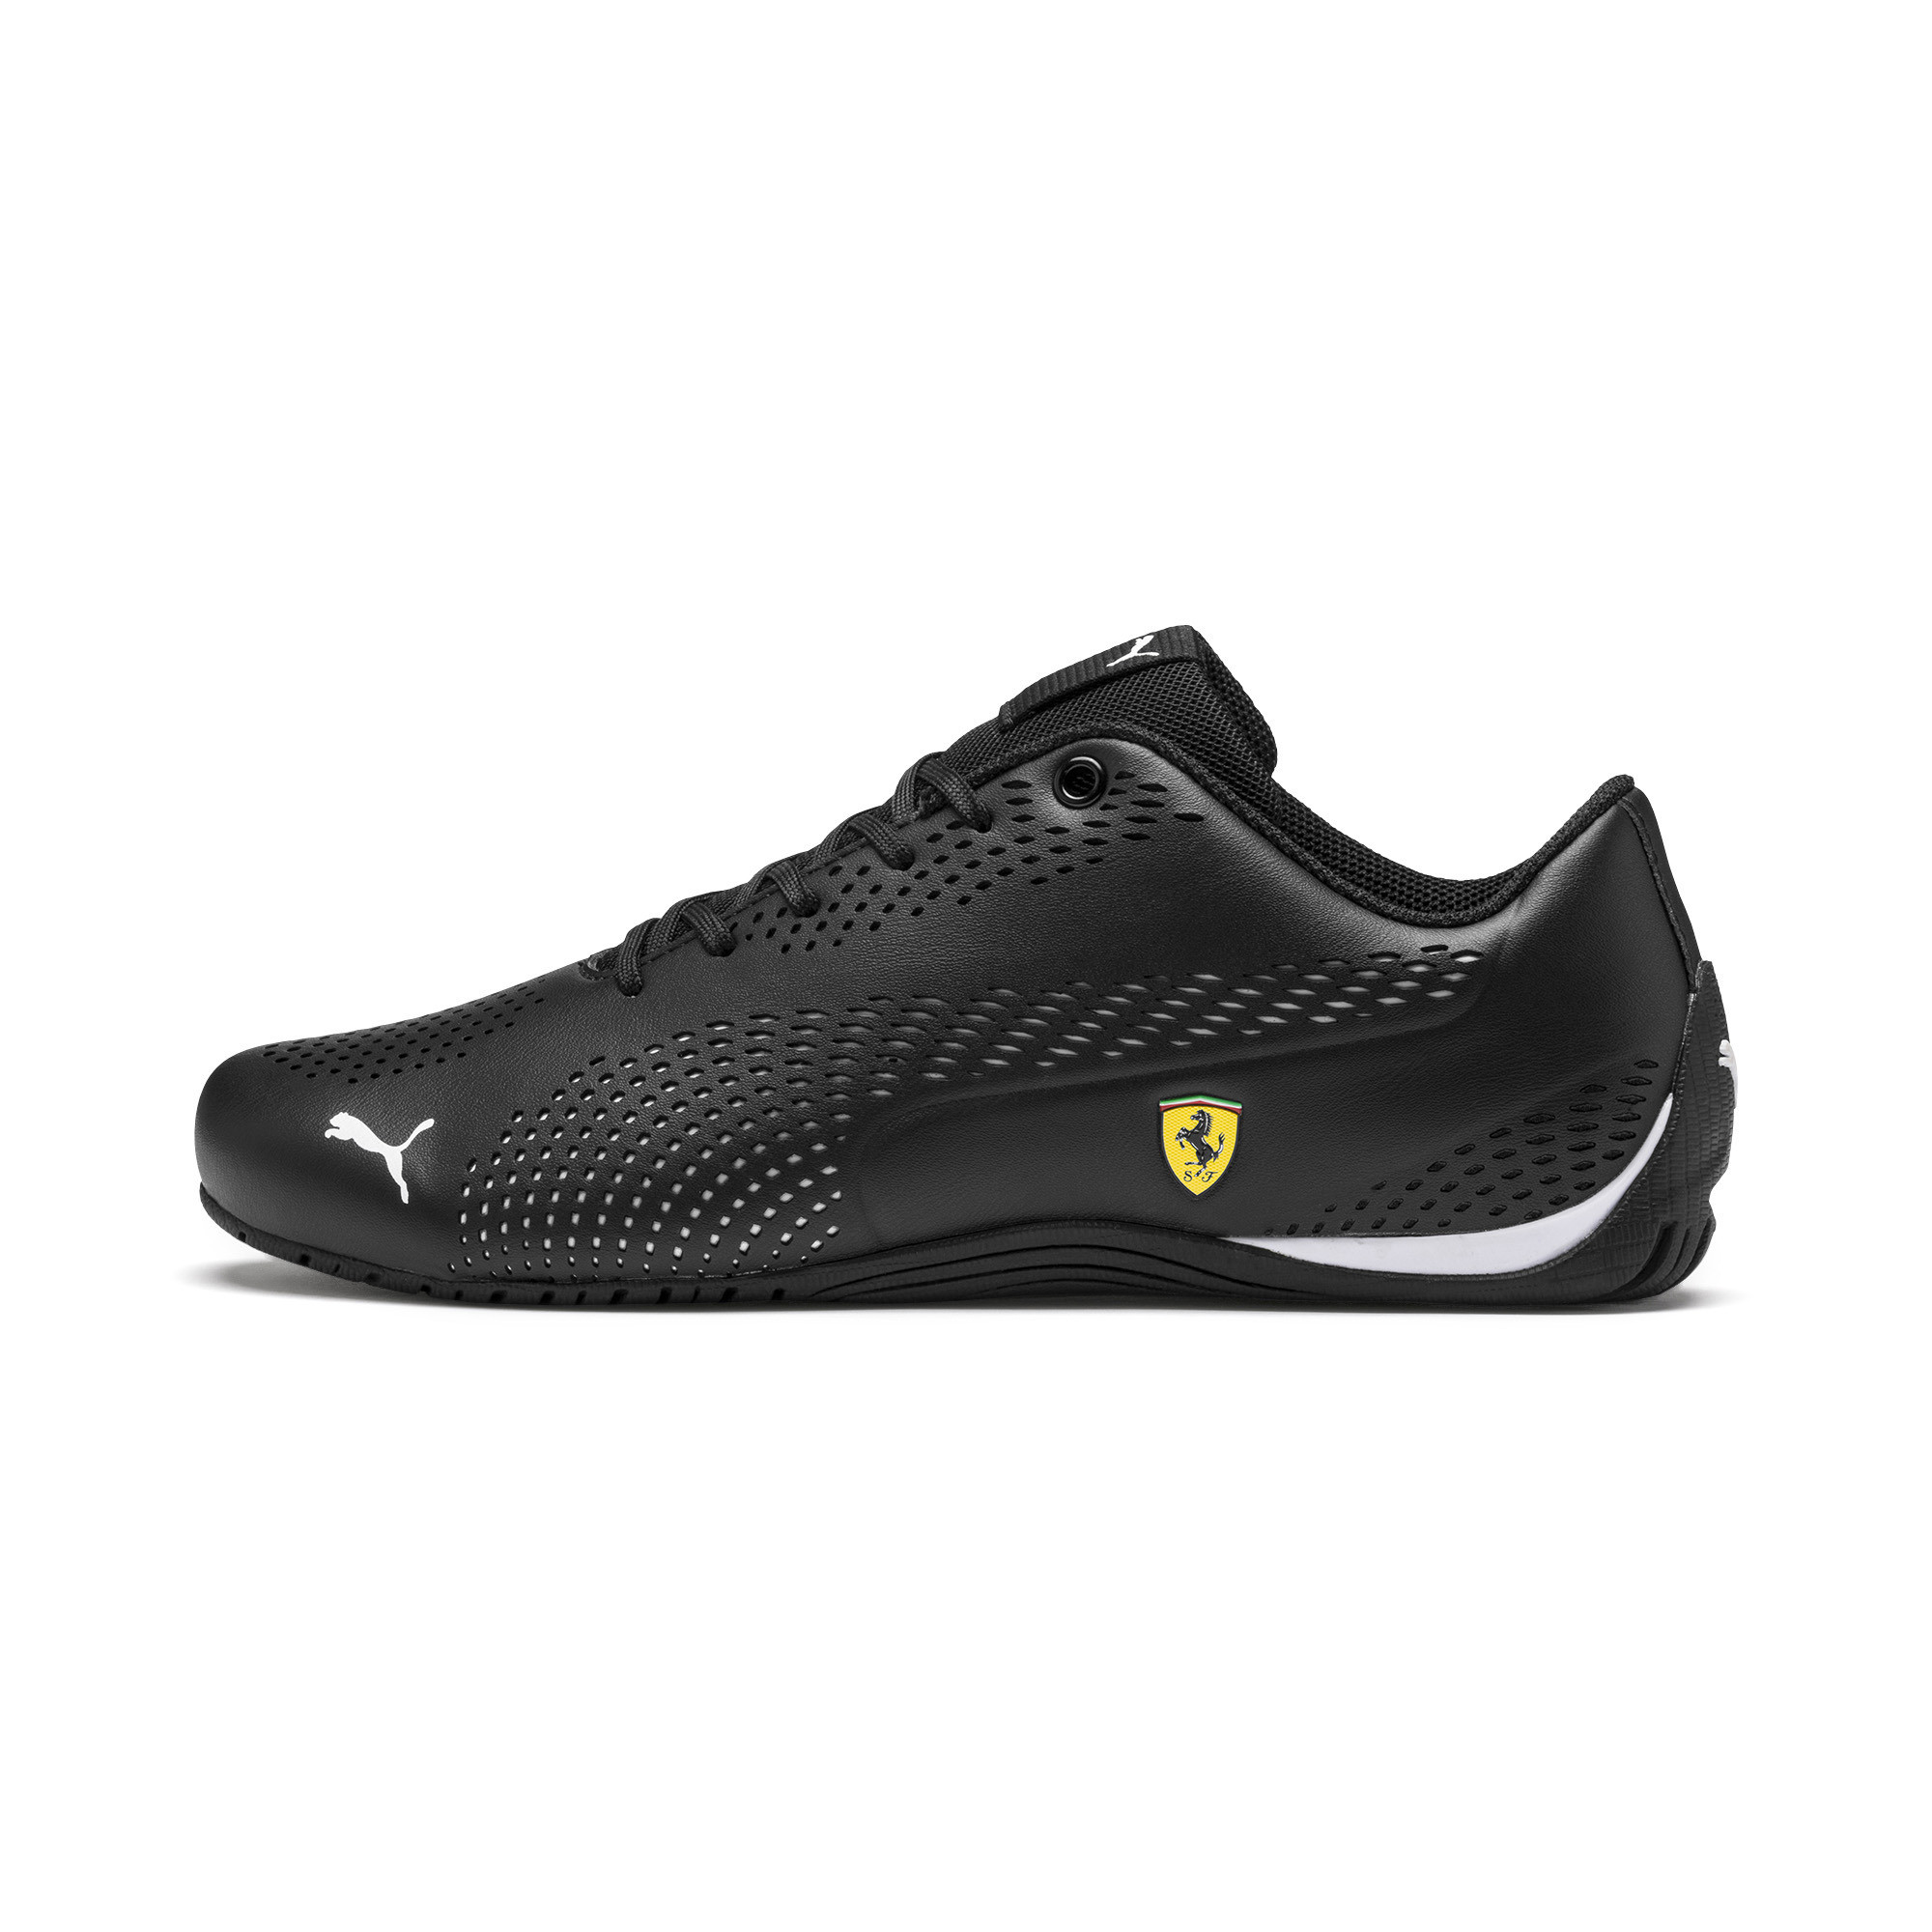 PUMA-Men-039-s-Scuderia-Ferrari-Drift-Cat-5-Ultra-II-Shoes thumbnail 18